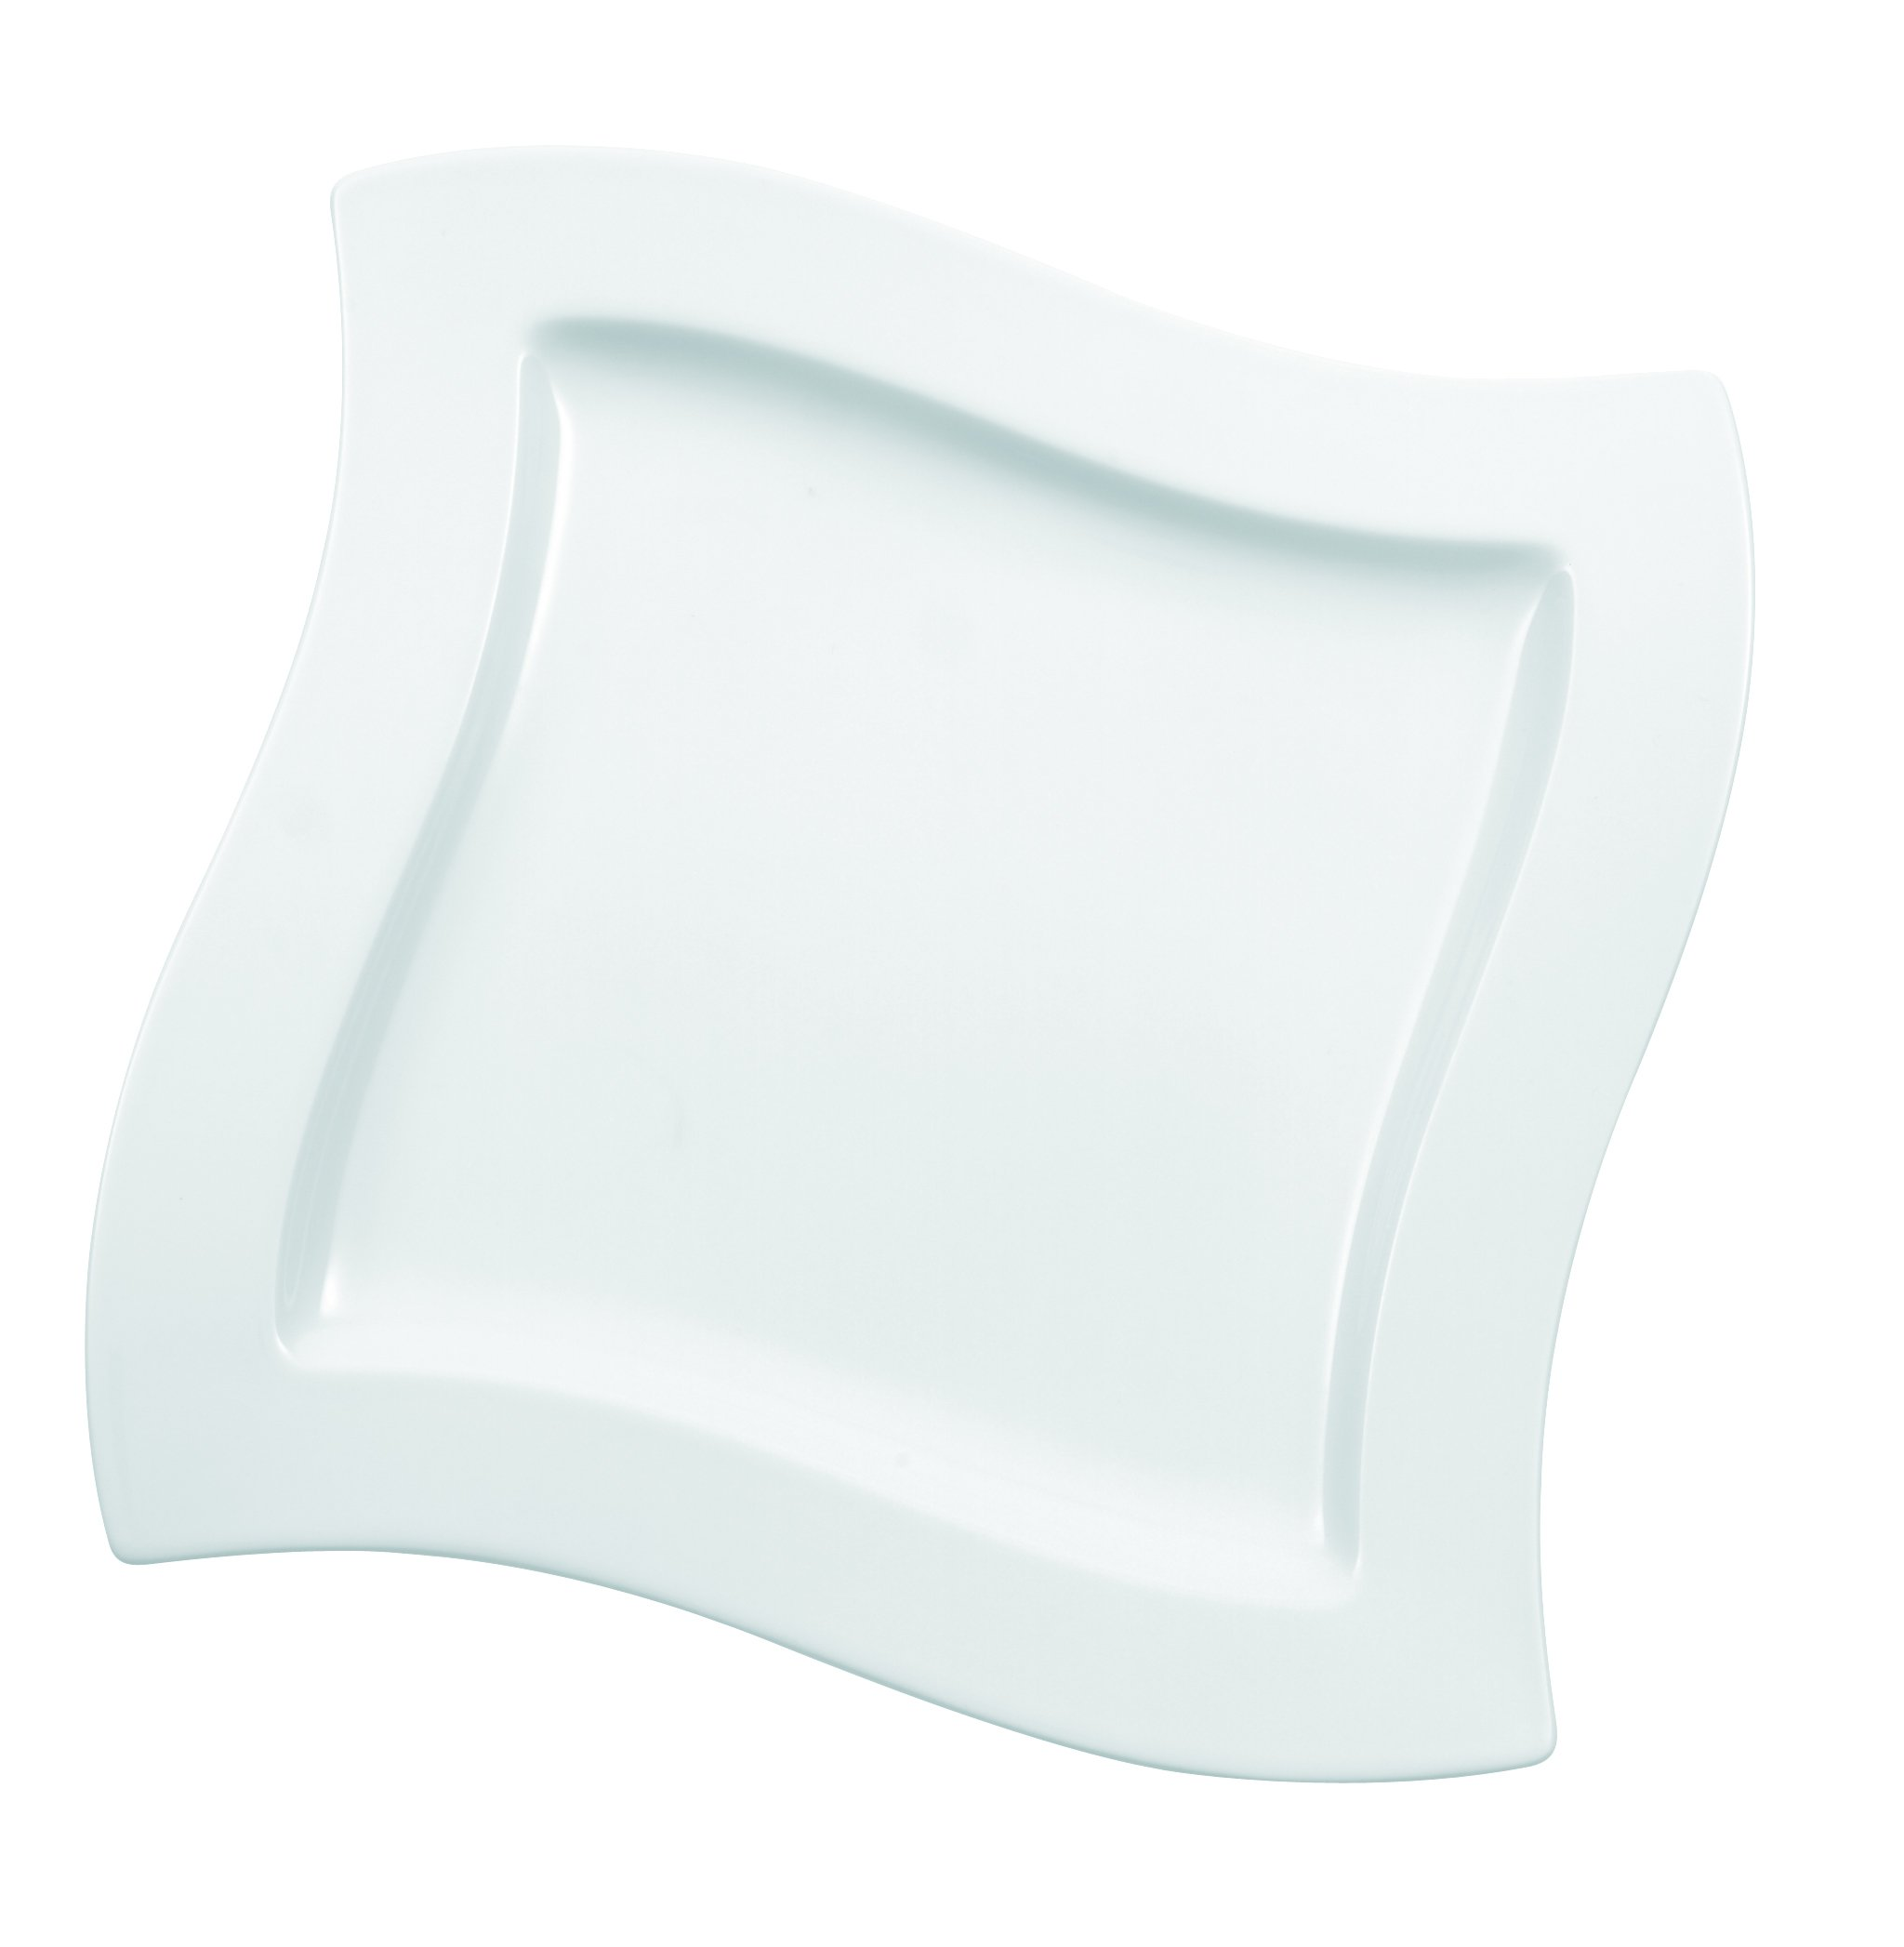 New Wave Dinner Plate Set of 4 by Villeroy & Boch - 10.5 Inches